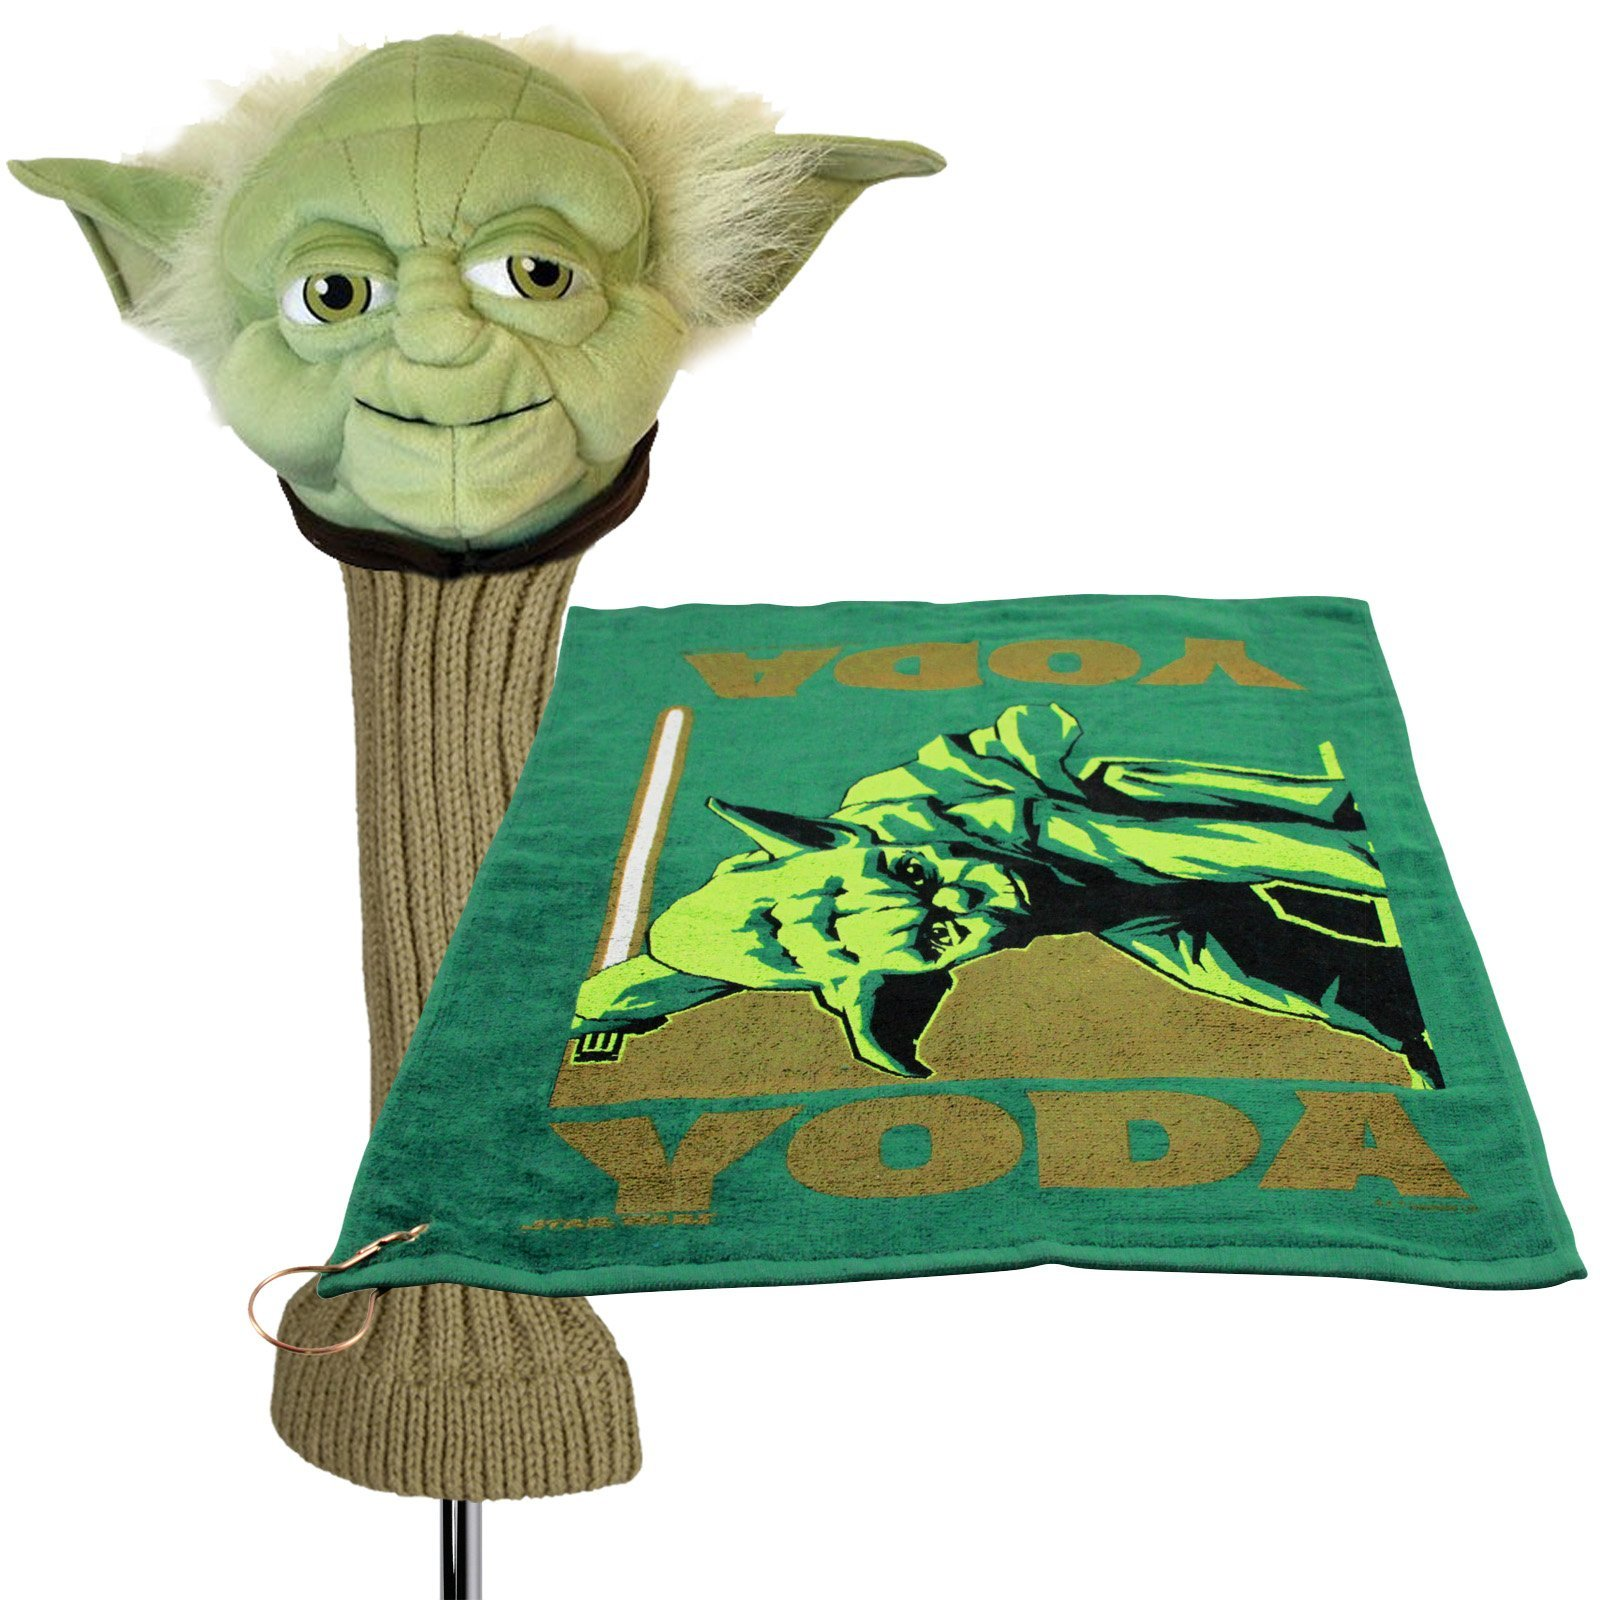 Star Wars Yoda 460cc Golf Head Cover and Towel with Corner Grommet Set